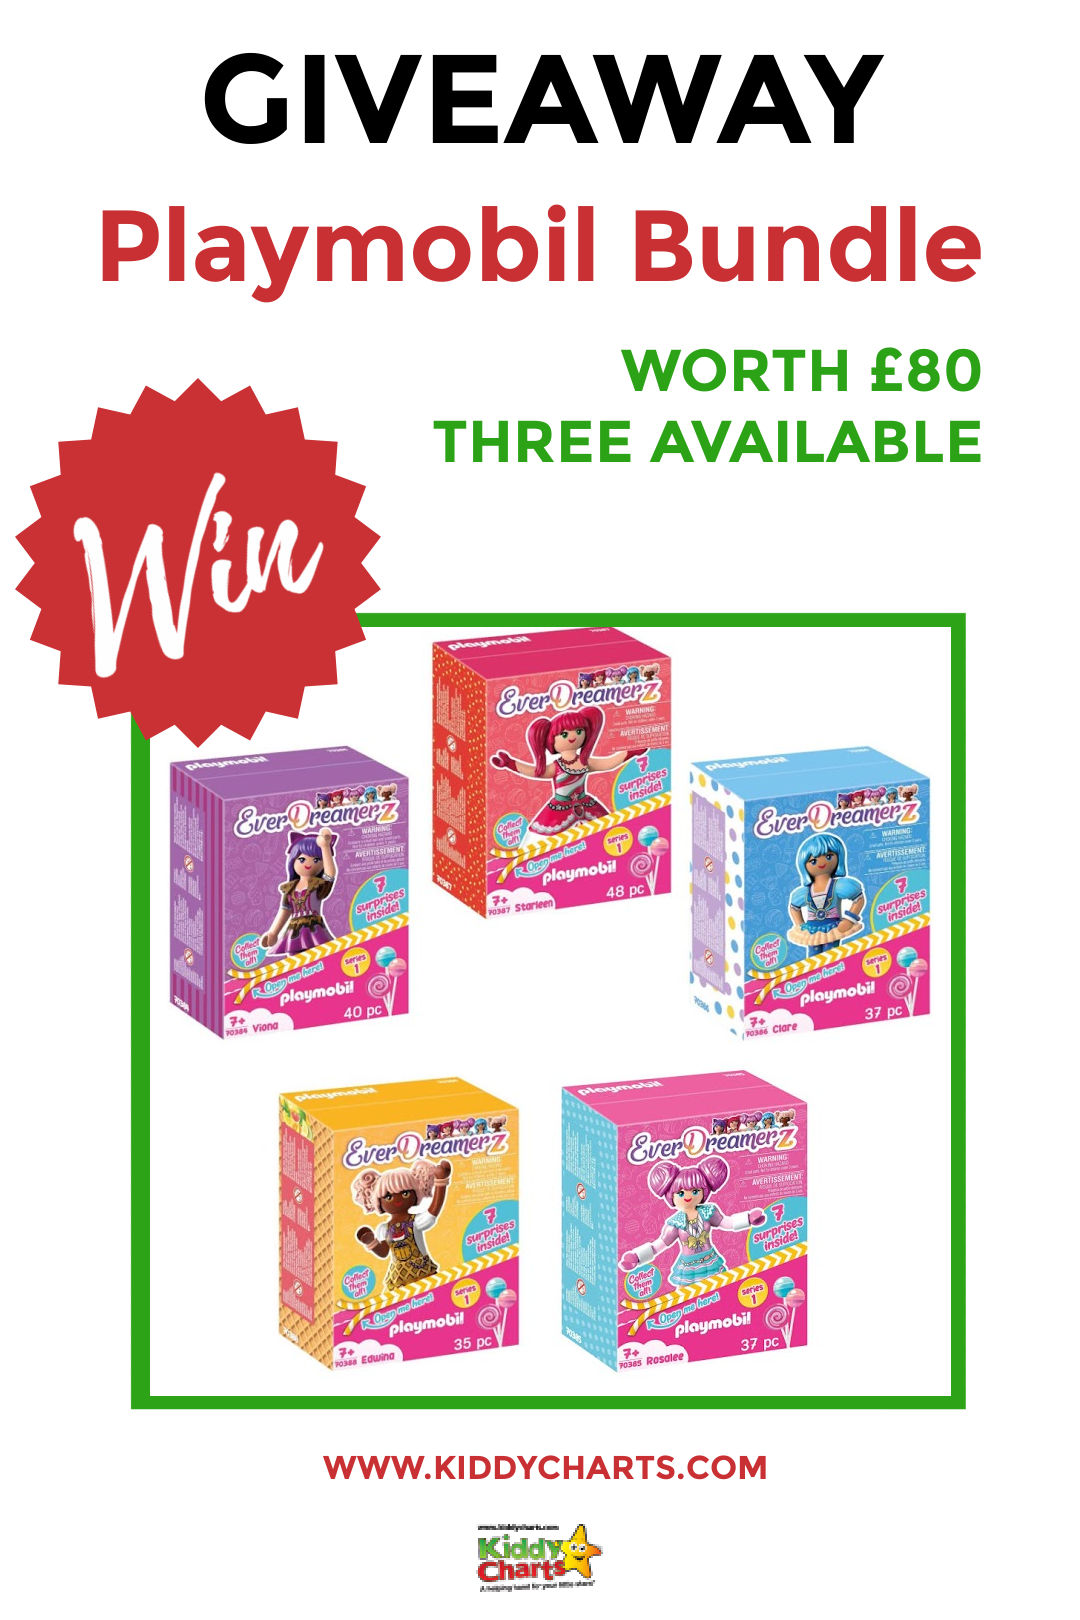 Win £80 Playmobil EverDreamerz bundle: Three to give away!